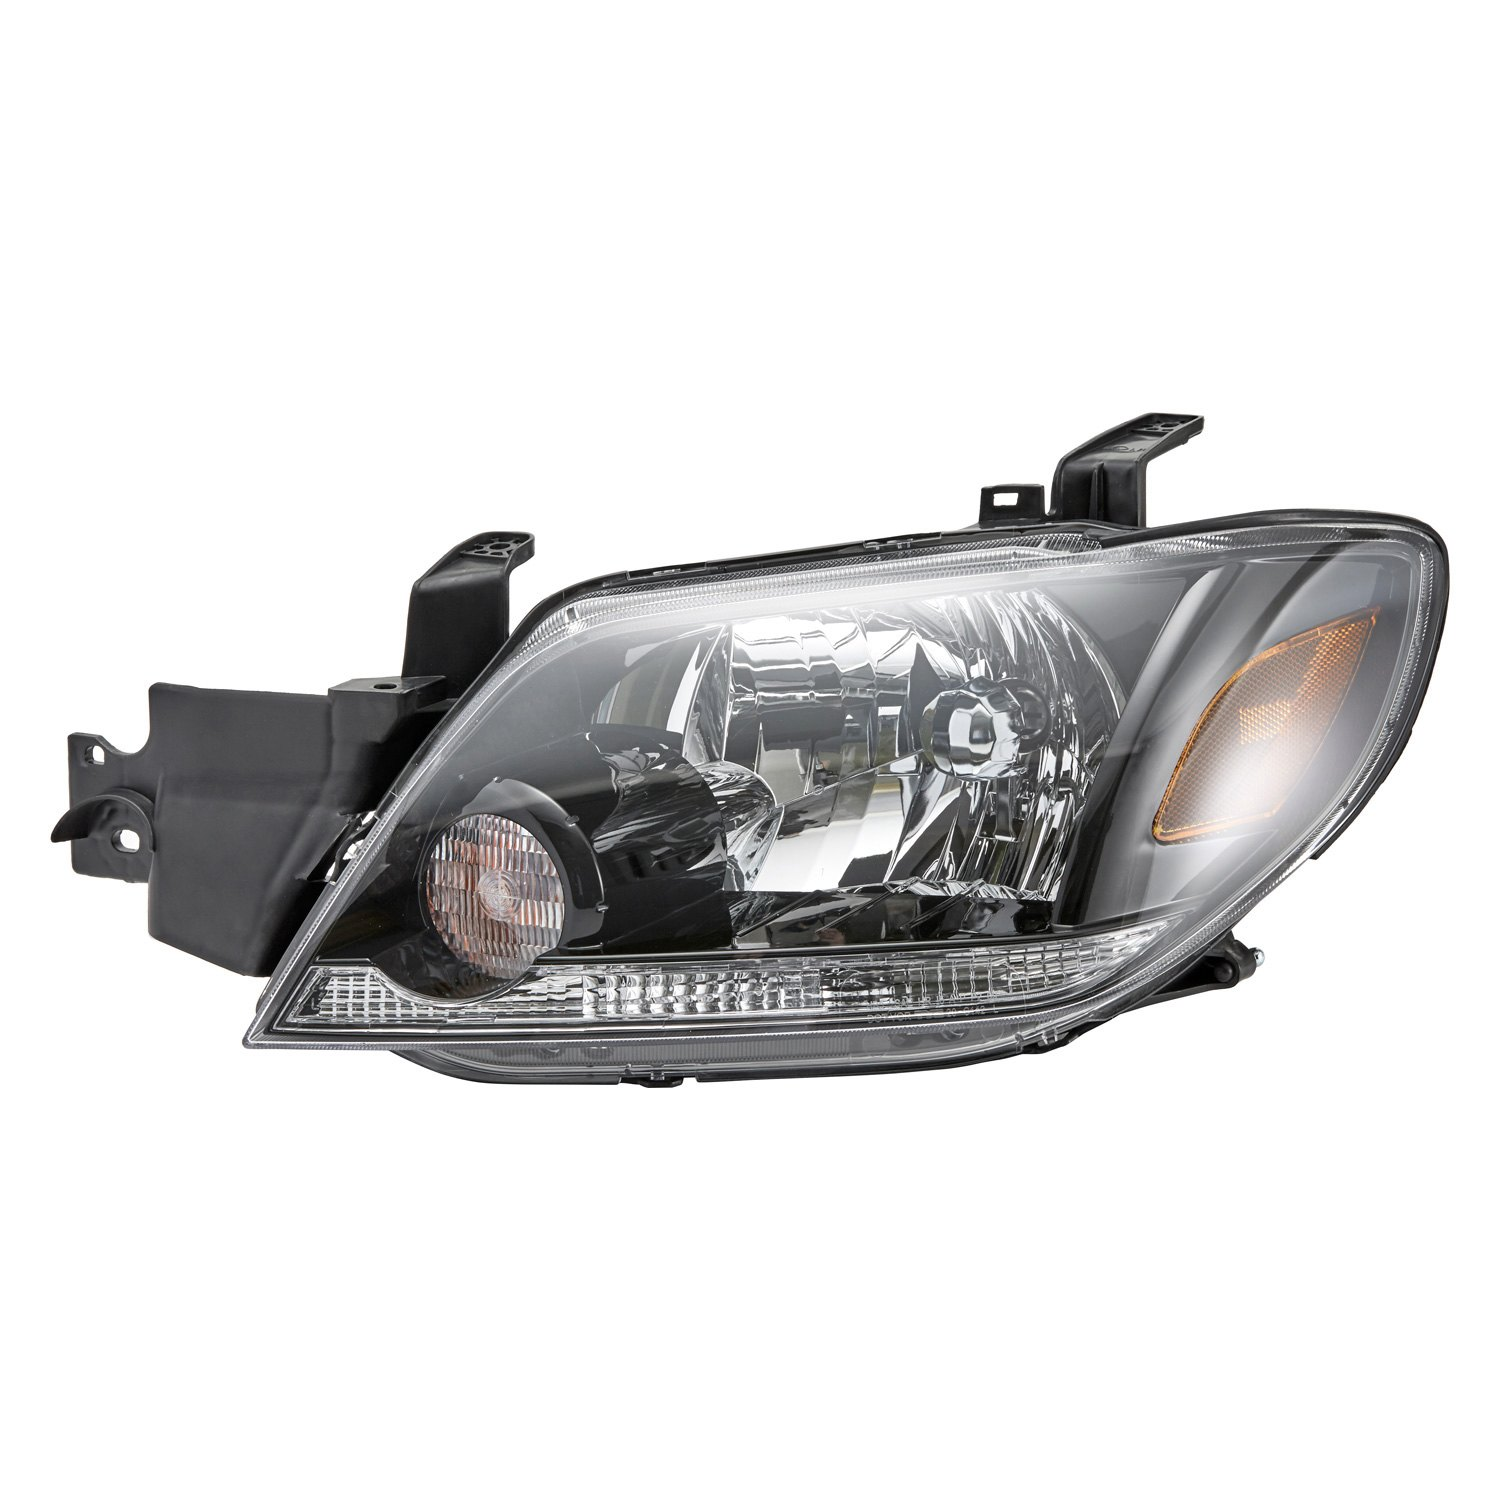 tyc mitsubishi outlander 2003 2004 replacement headlight. Black Bedroom Furniture Sets. Home Design Ideas